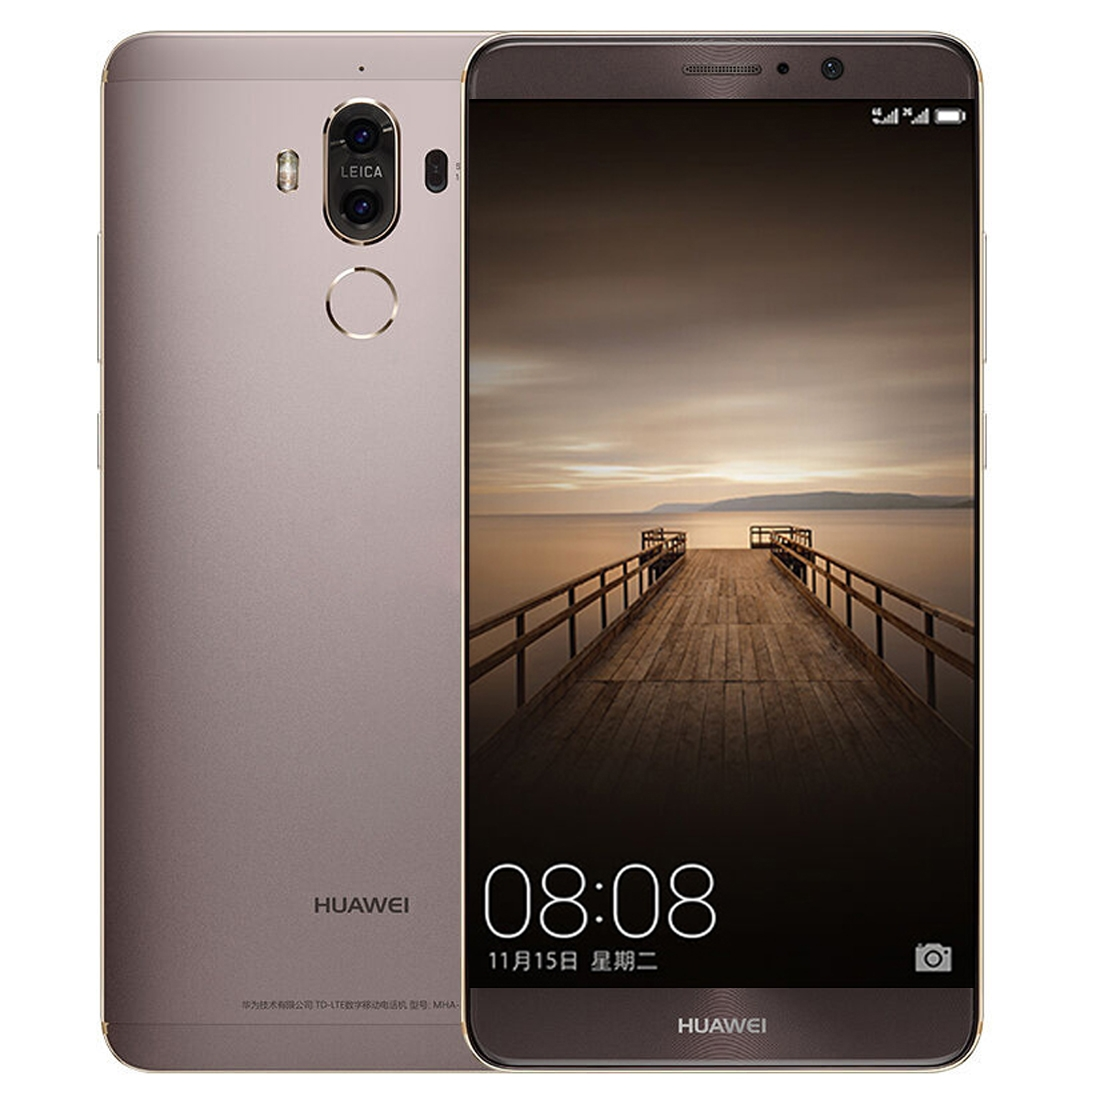 Huawei Mate 9, 4GB+64GB, plus smart hod. U80, mocha gold